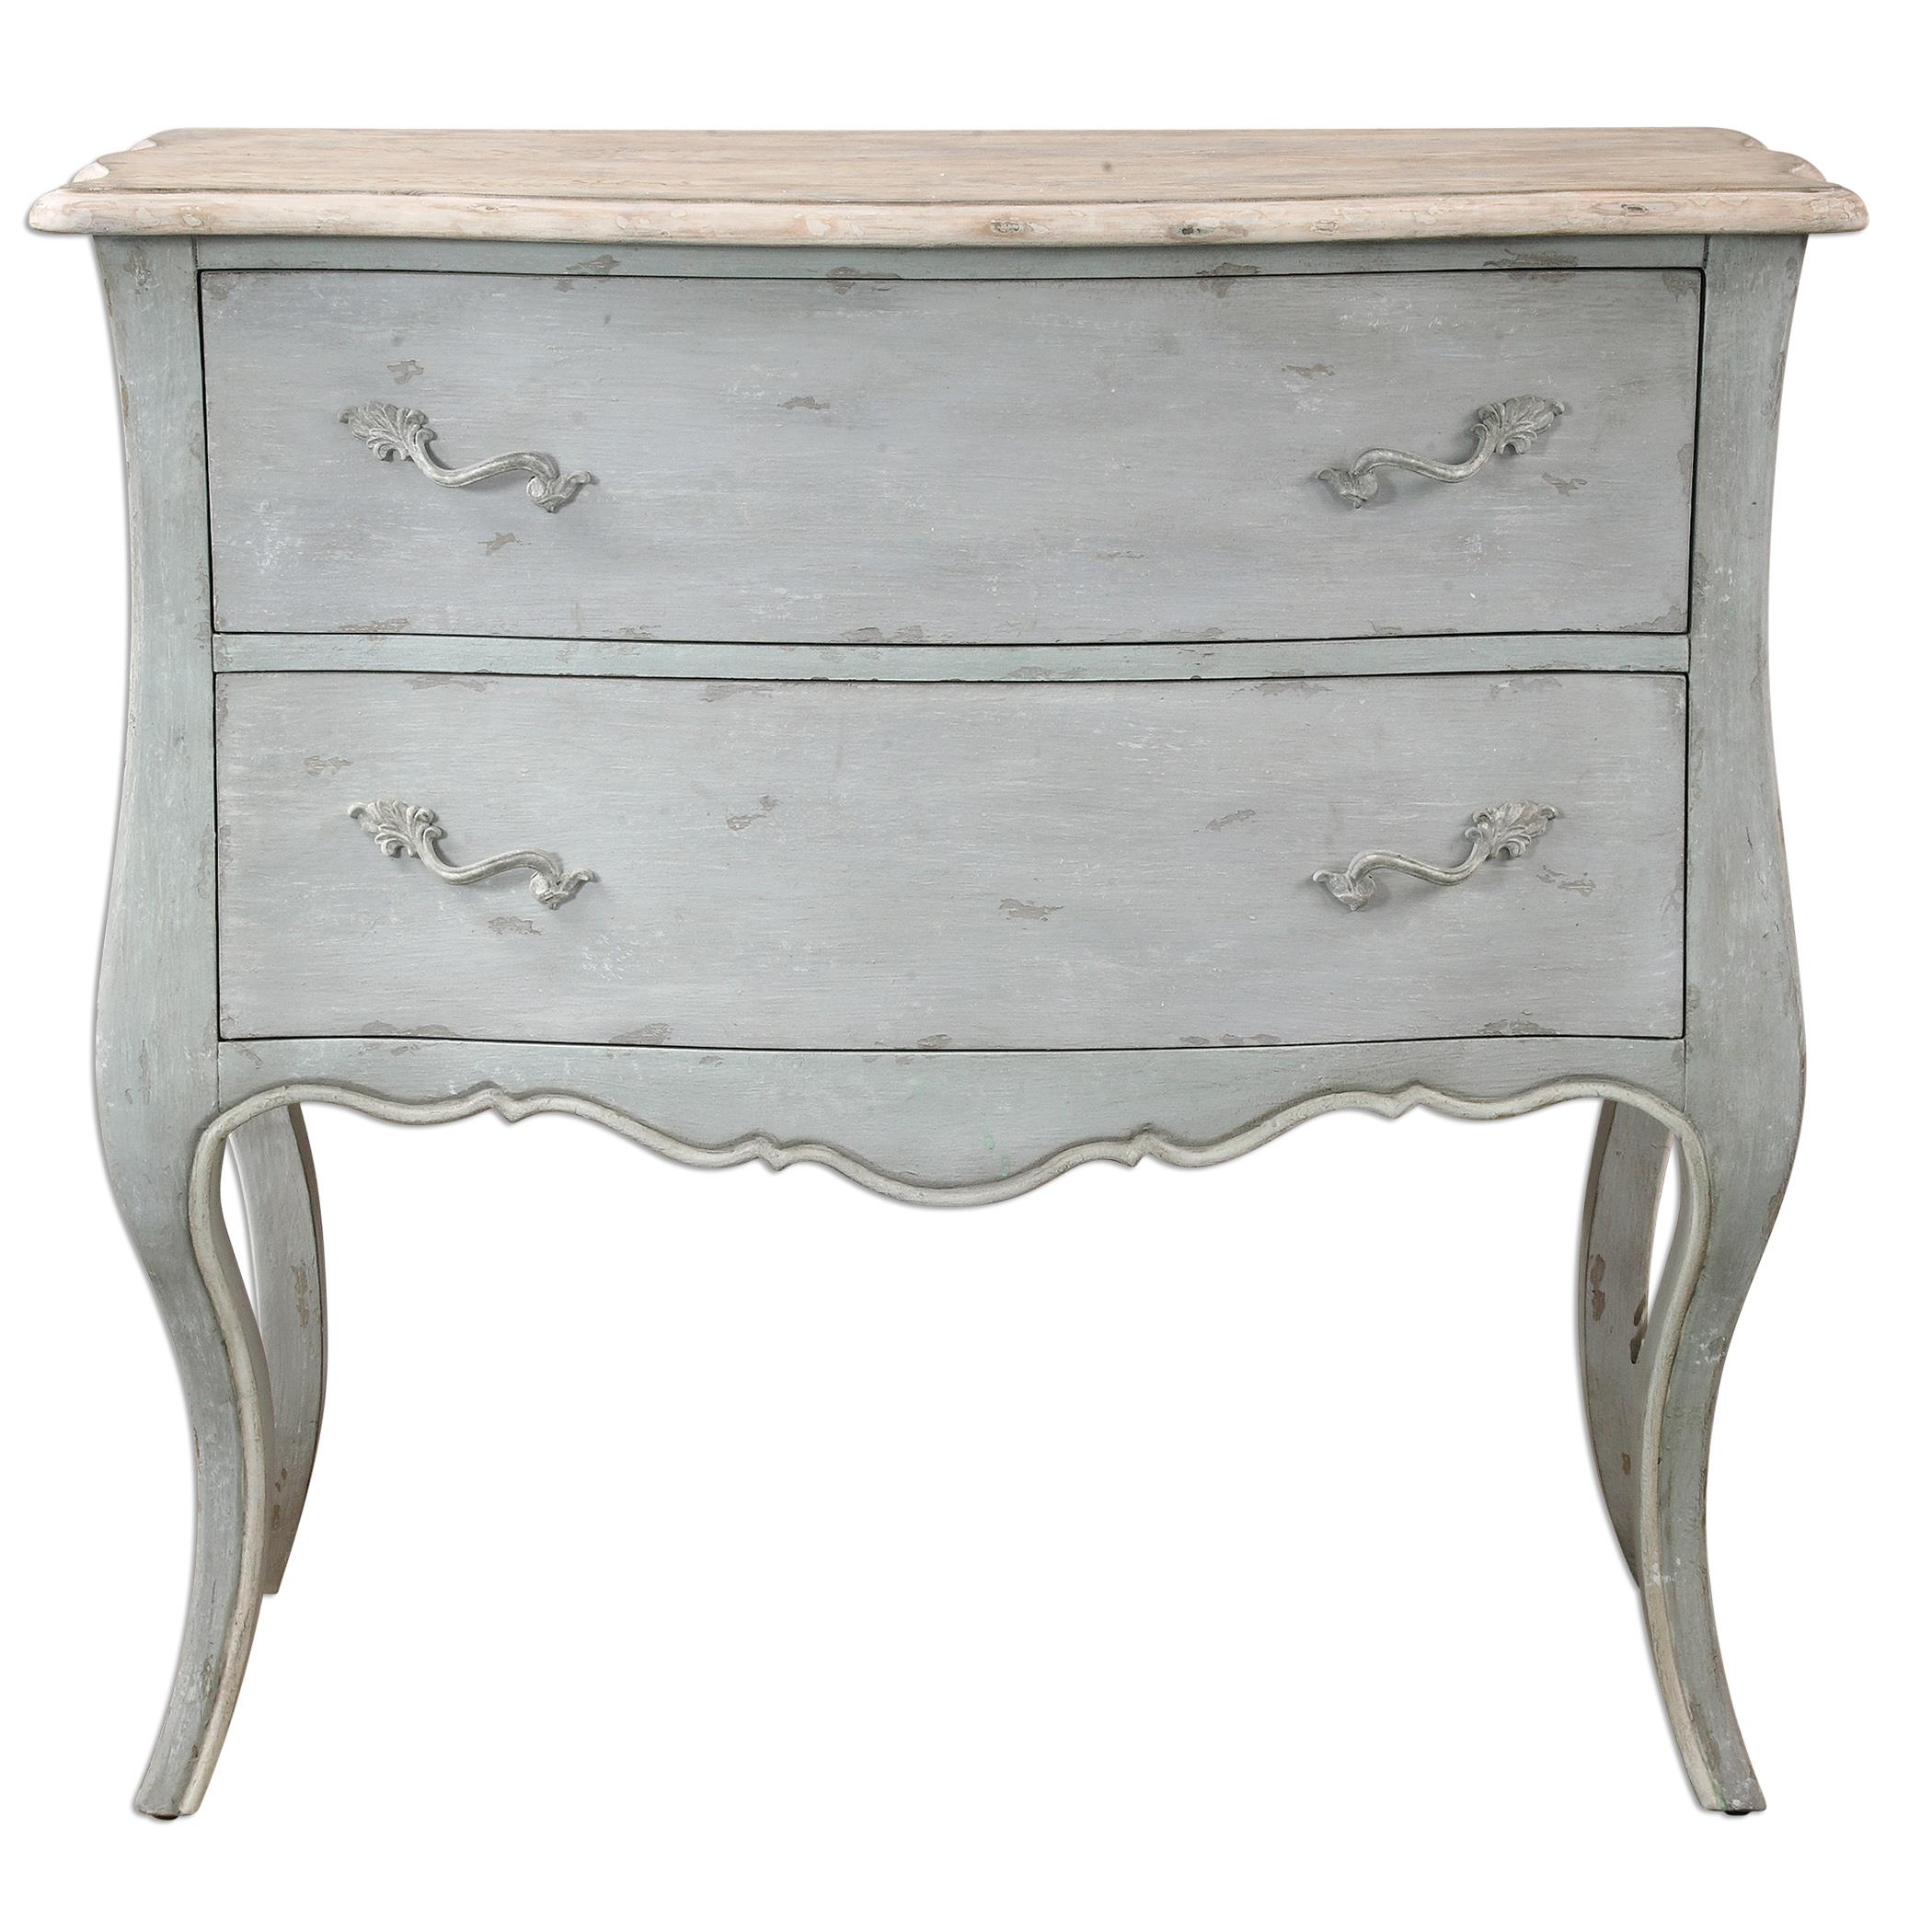 Uttermost Accent Furniture Ferrand Gray Accent Chest - Item Number: 24527